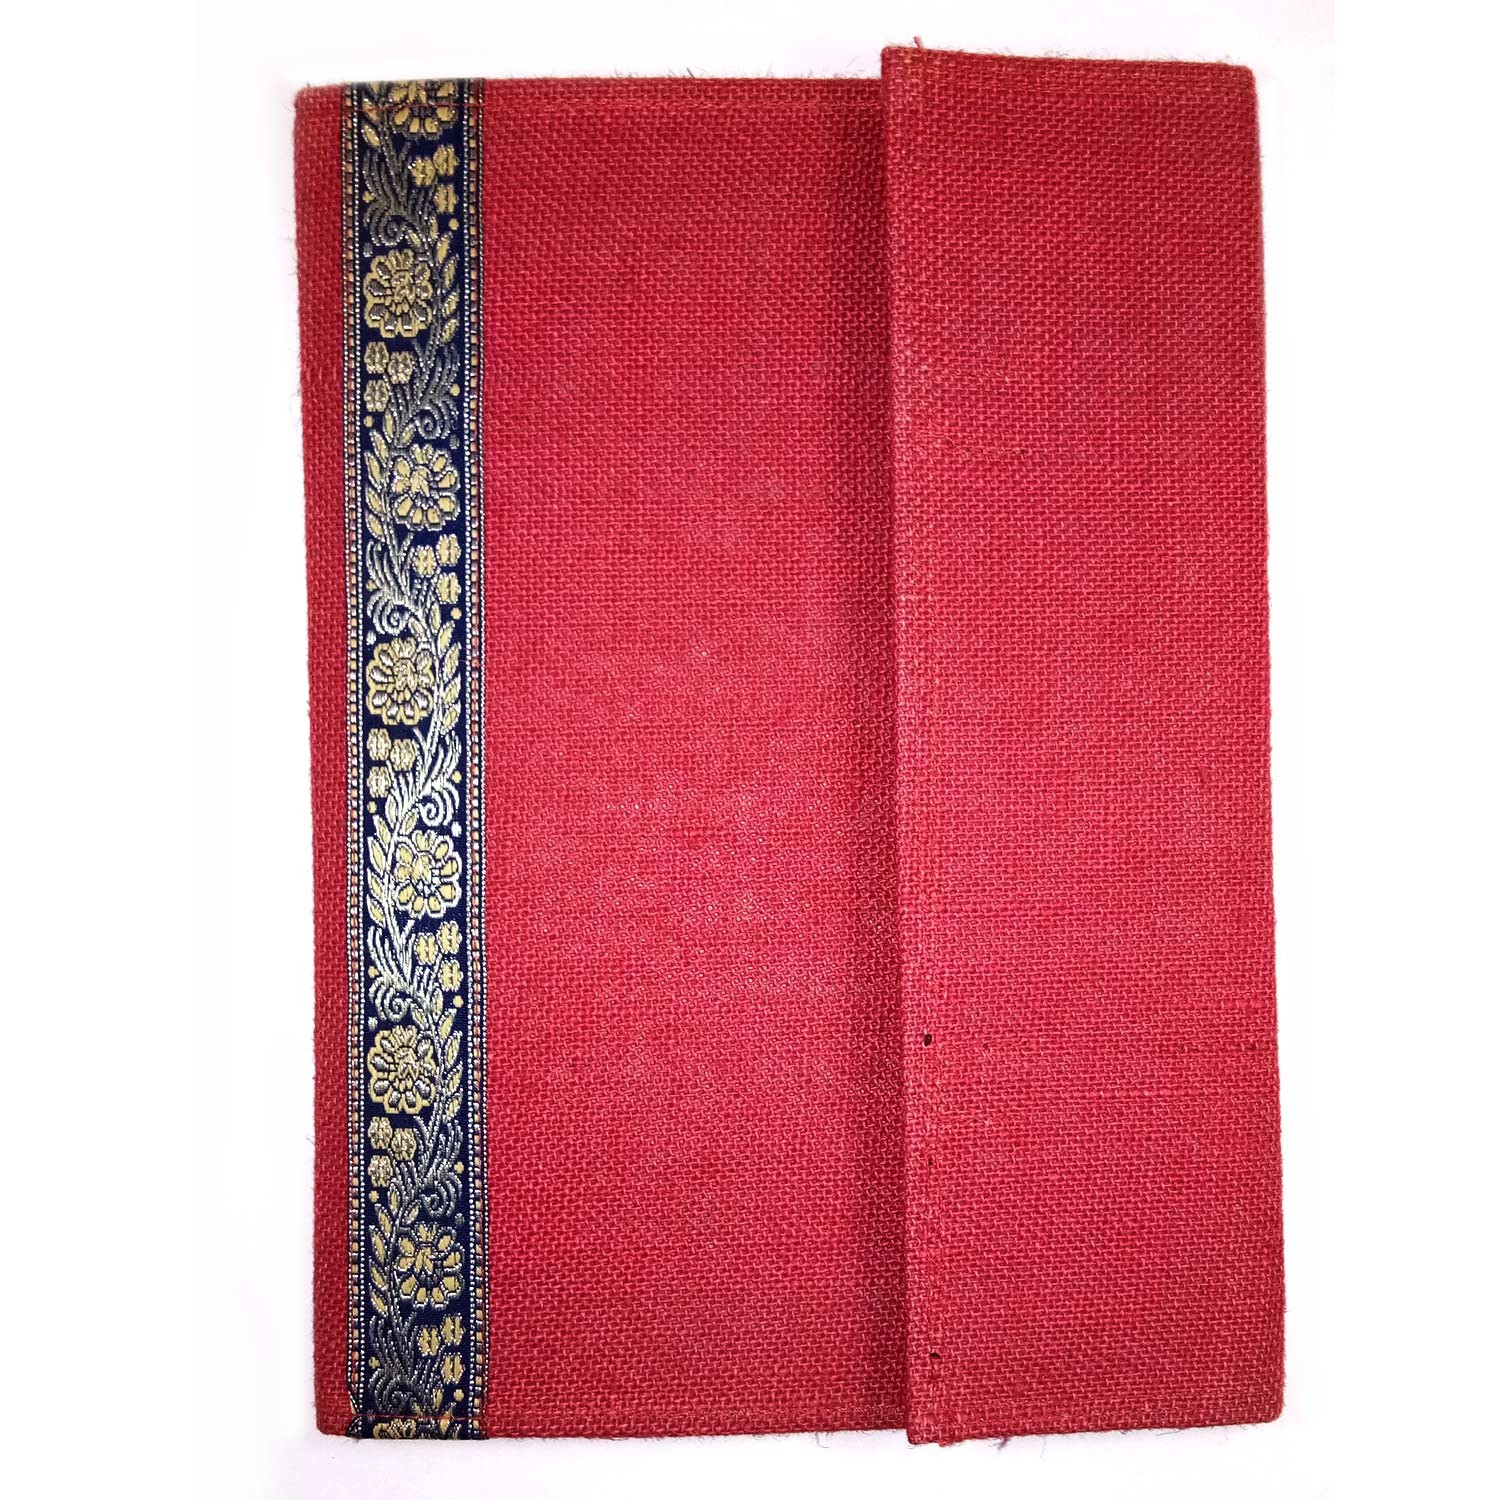 Red Jute File Folder By People with Disability